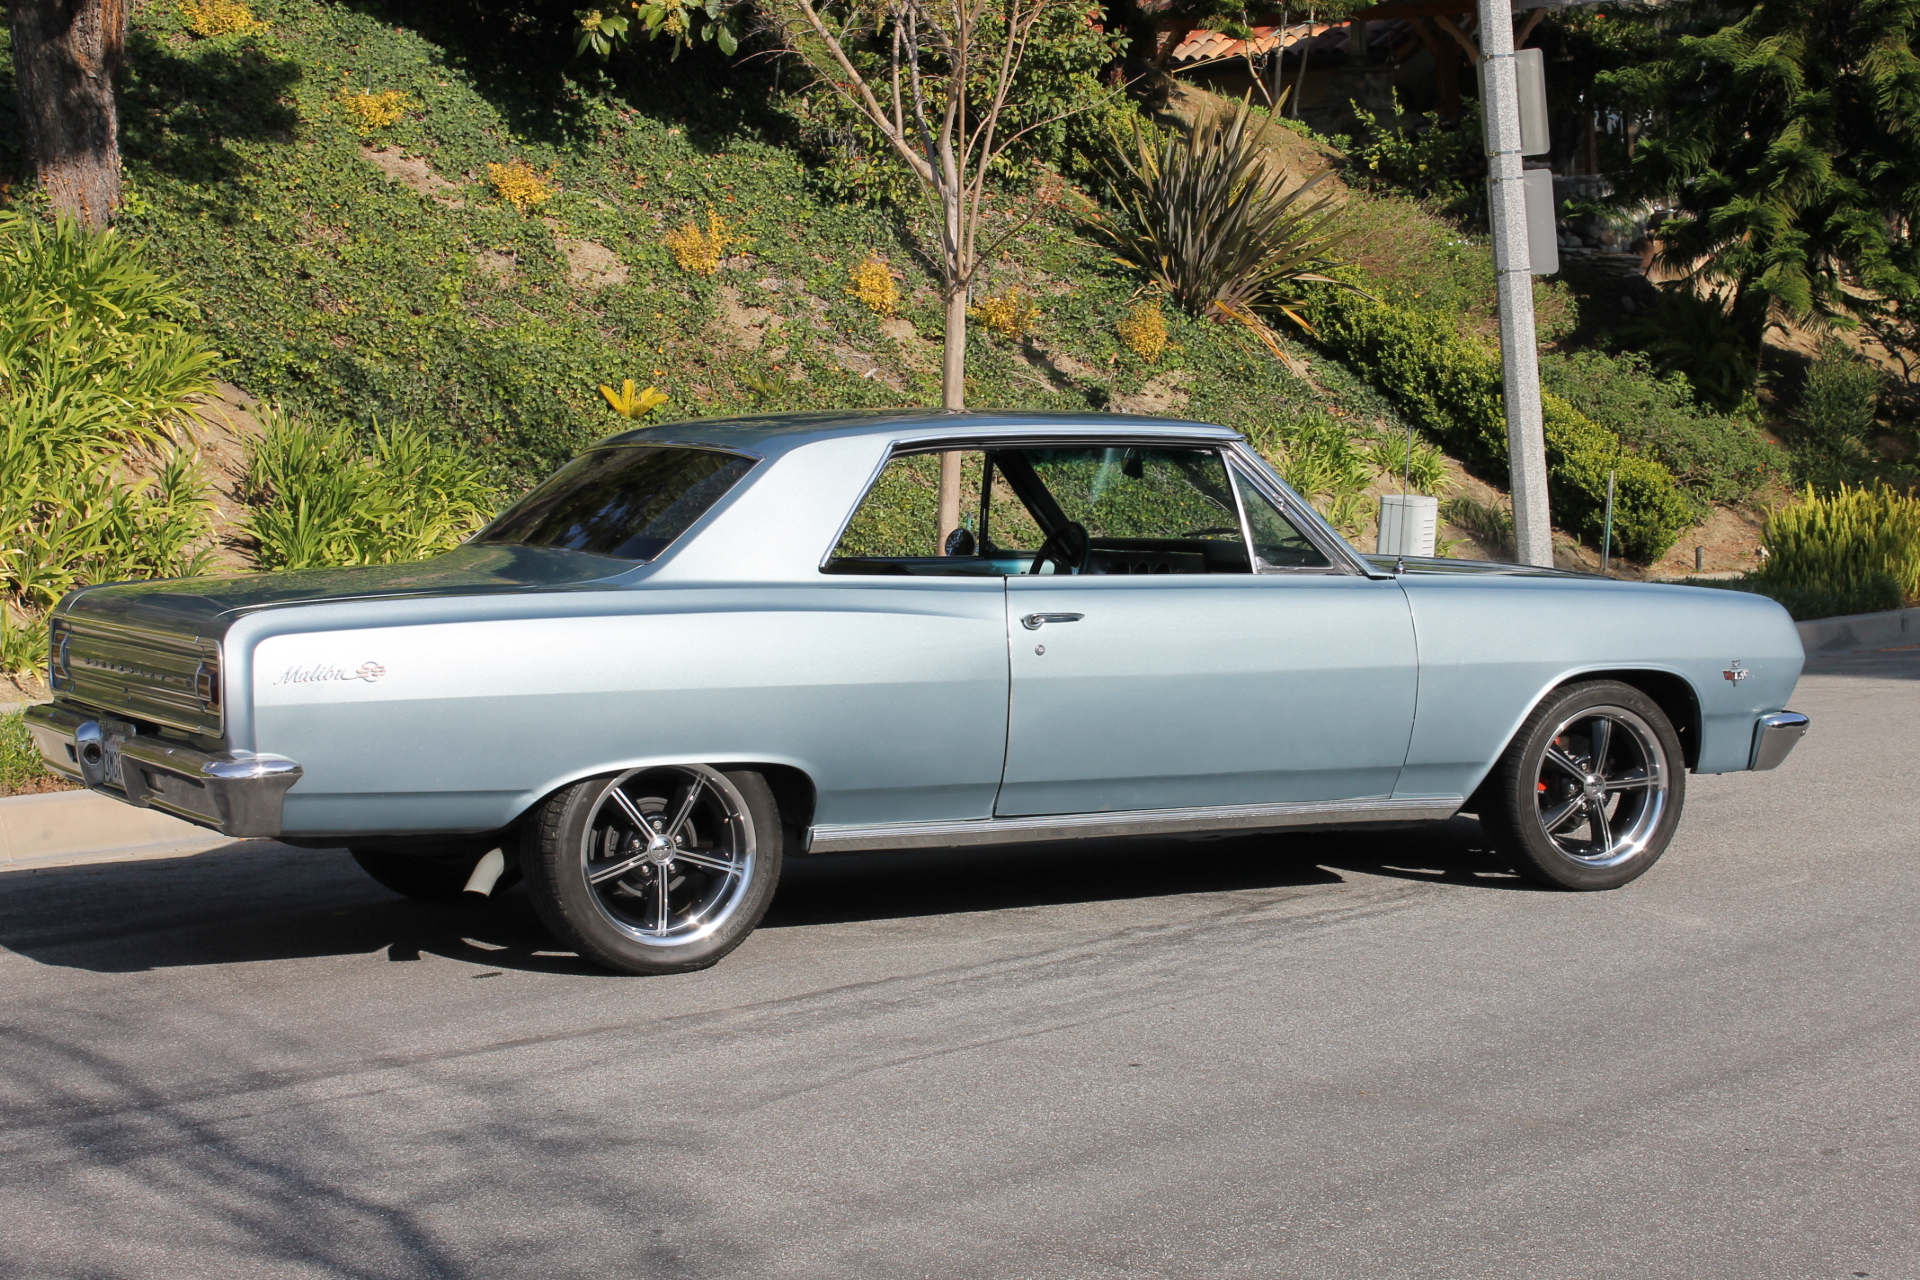 Off Lease Cars >> 1965 Chevelle SS | The Vault Classic Cars